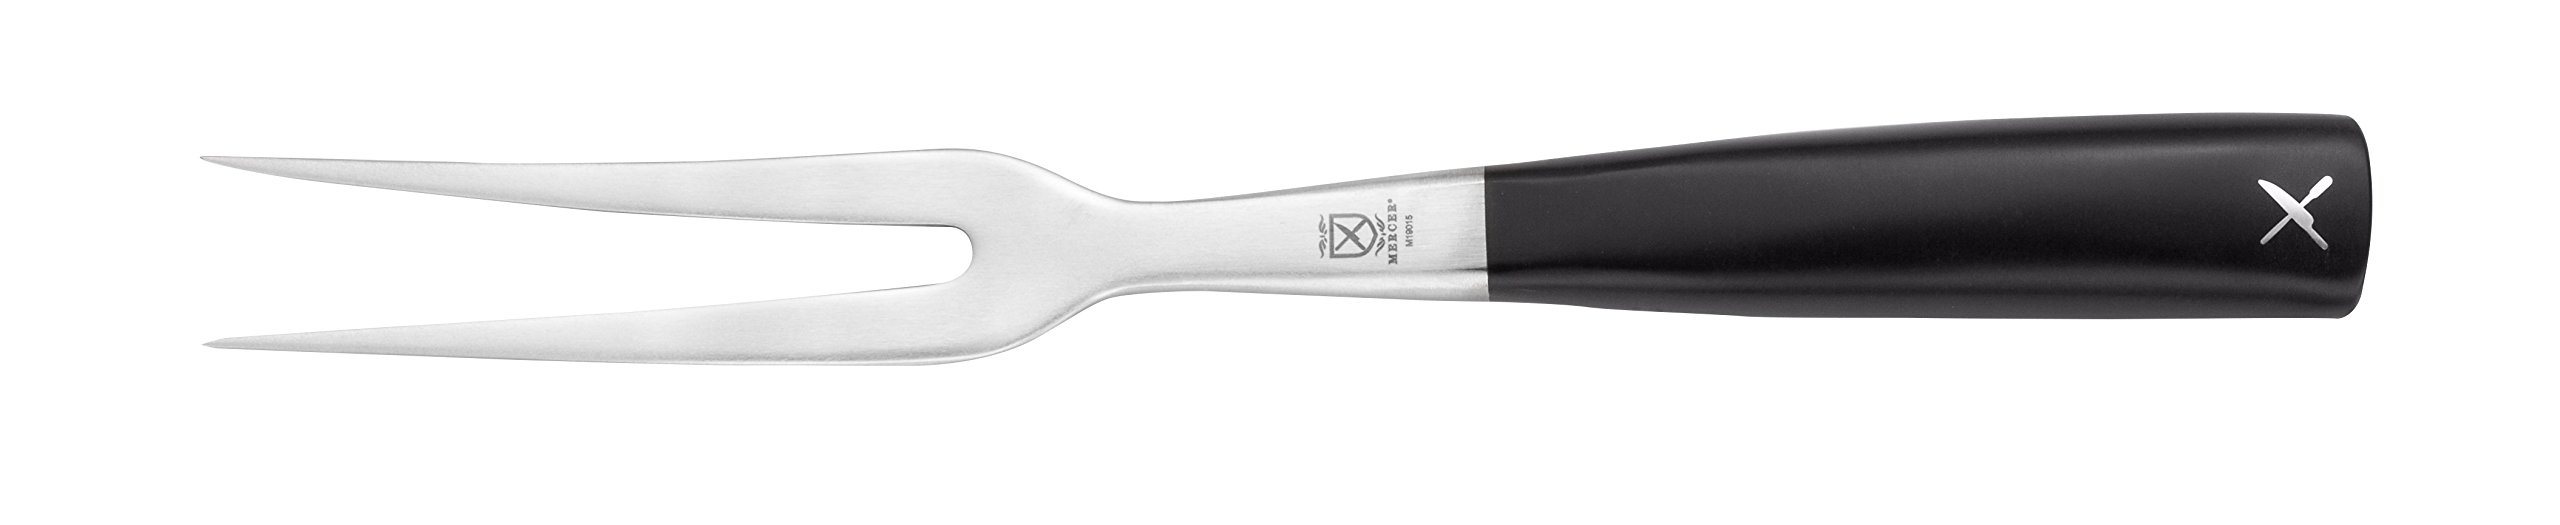 Mercer Culinary Züm Forged Curved Carving Fork, 6 1/4 Inch